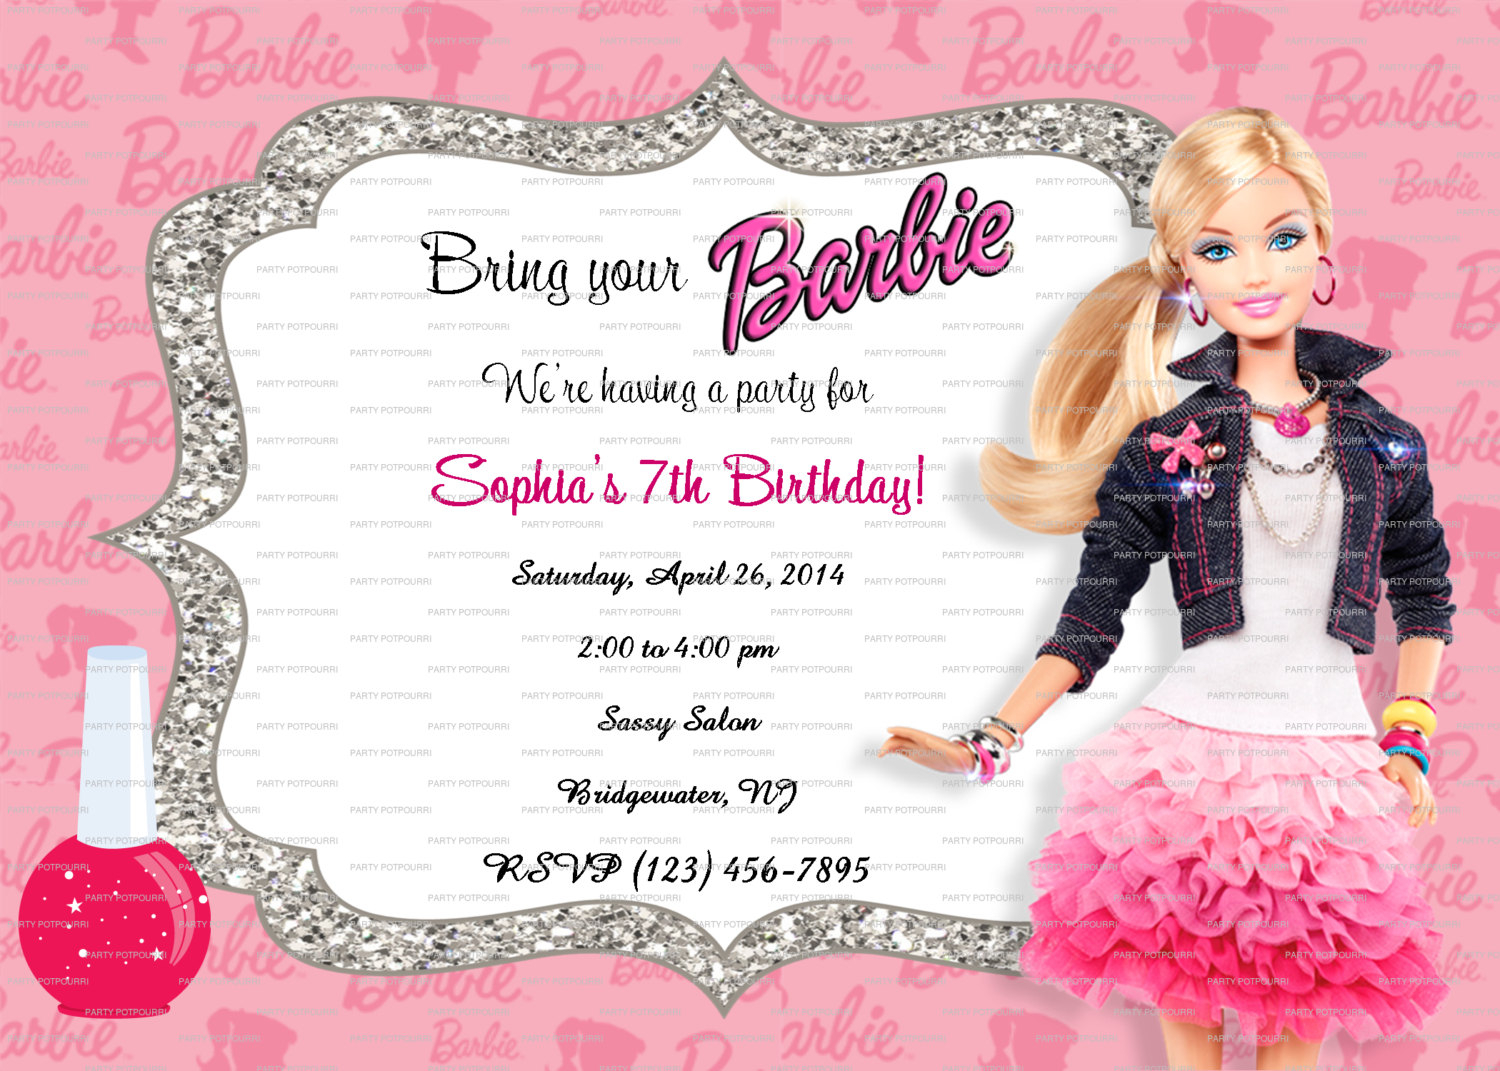 birthday invitation barbie theme ; tips-easy-to-create-barbie-birthday-invitations-prepossessing-layout-the-barbie-birthday-invitations-modern-designs-silverlininginvitations